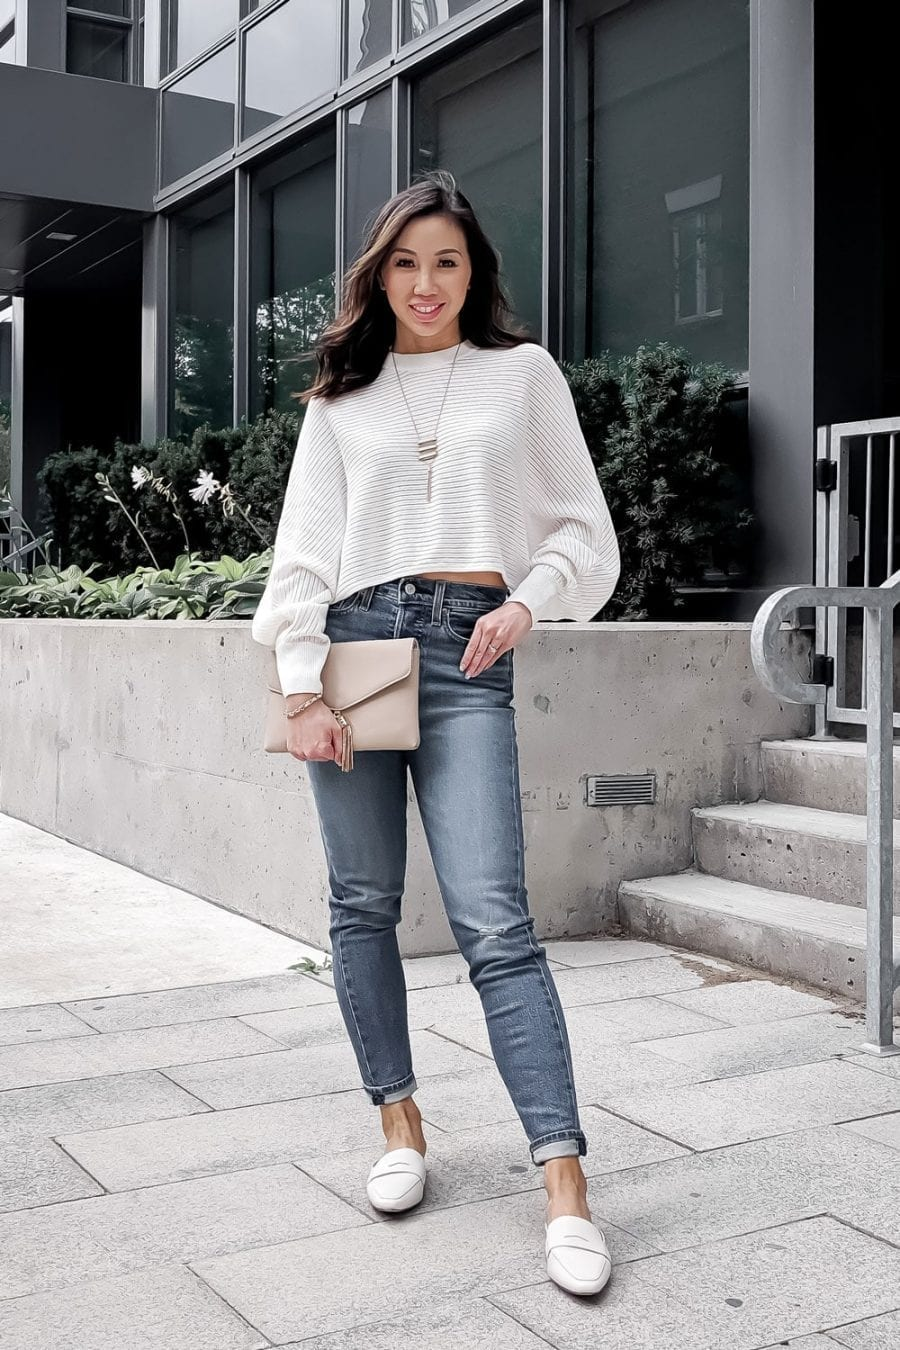 Casual outfit #OOTD - Levis Wedgie jeans, cropped white sweater, white loafers